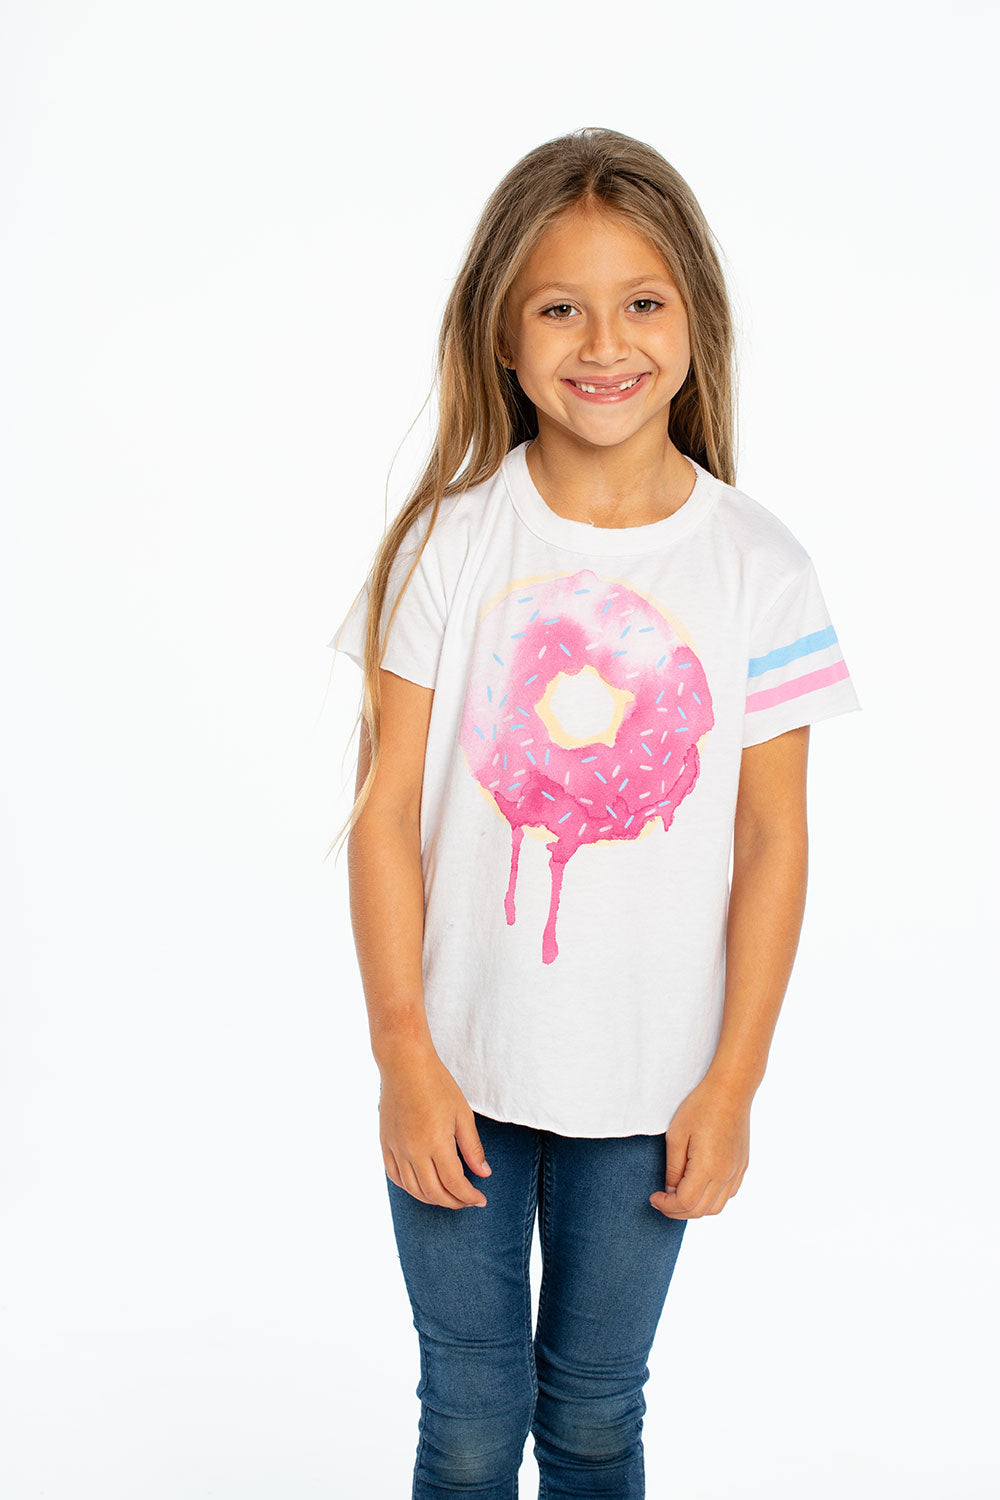 Painted Donut, GIRLS, chaserbrand.com,chaser clothing,chaser apparel,chaser los angeles